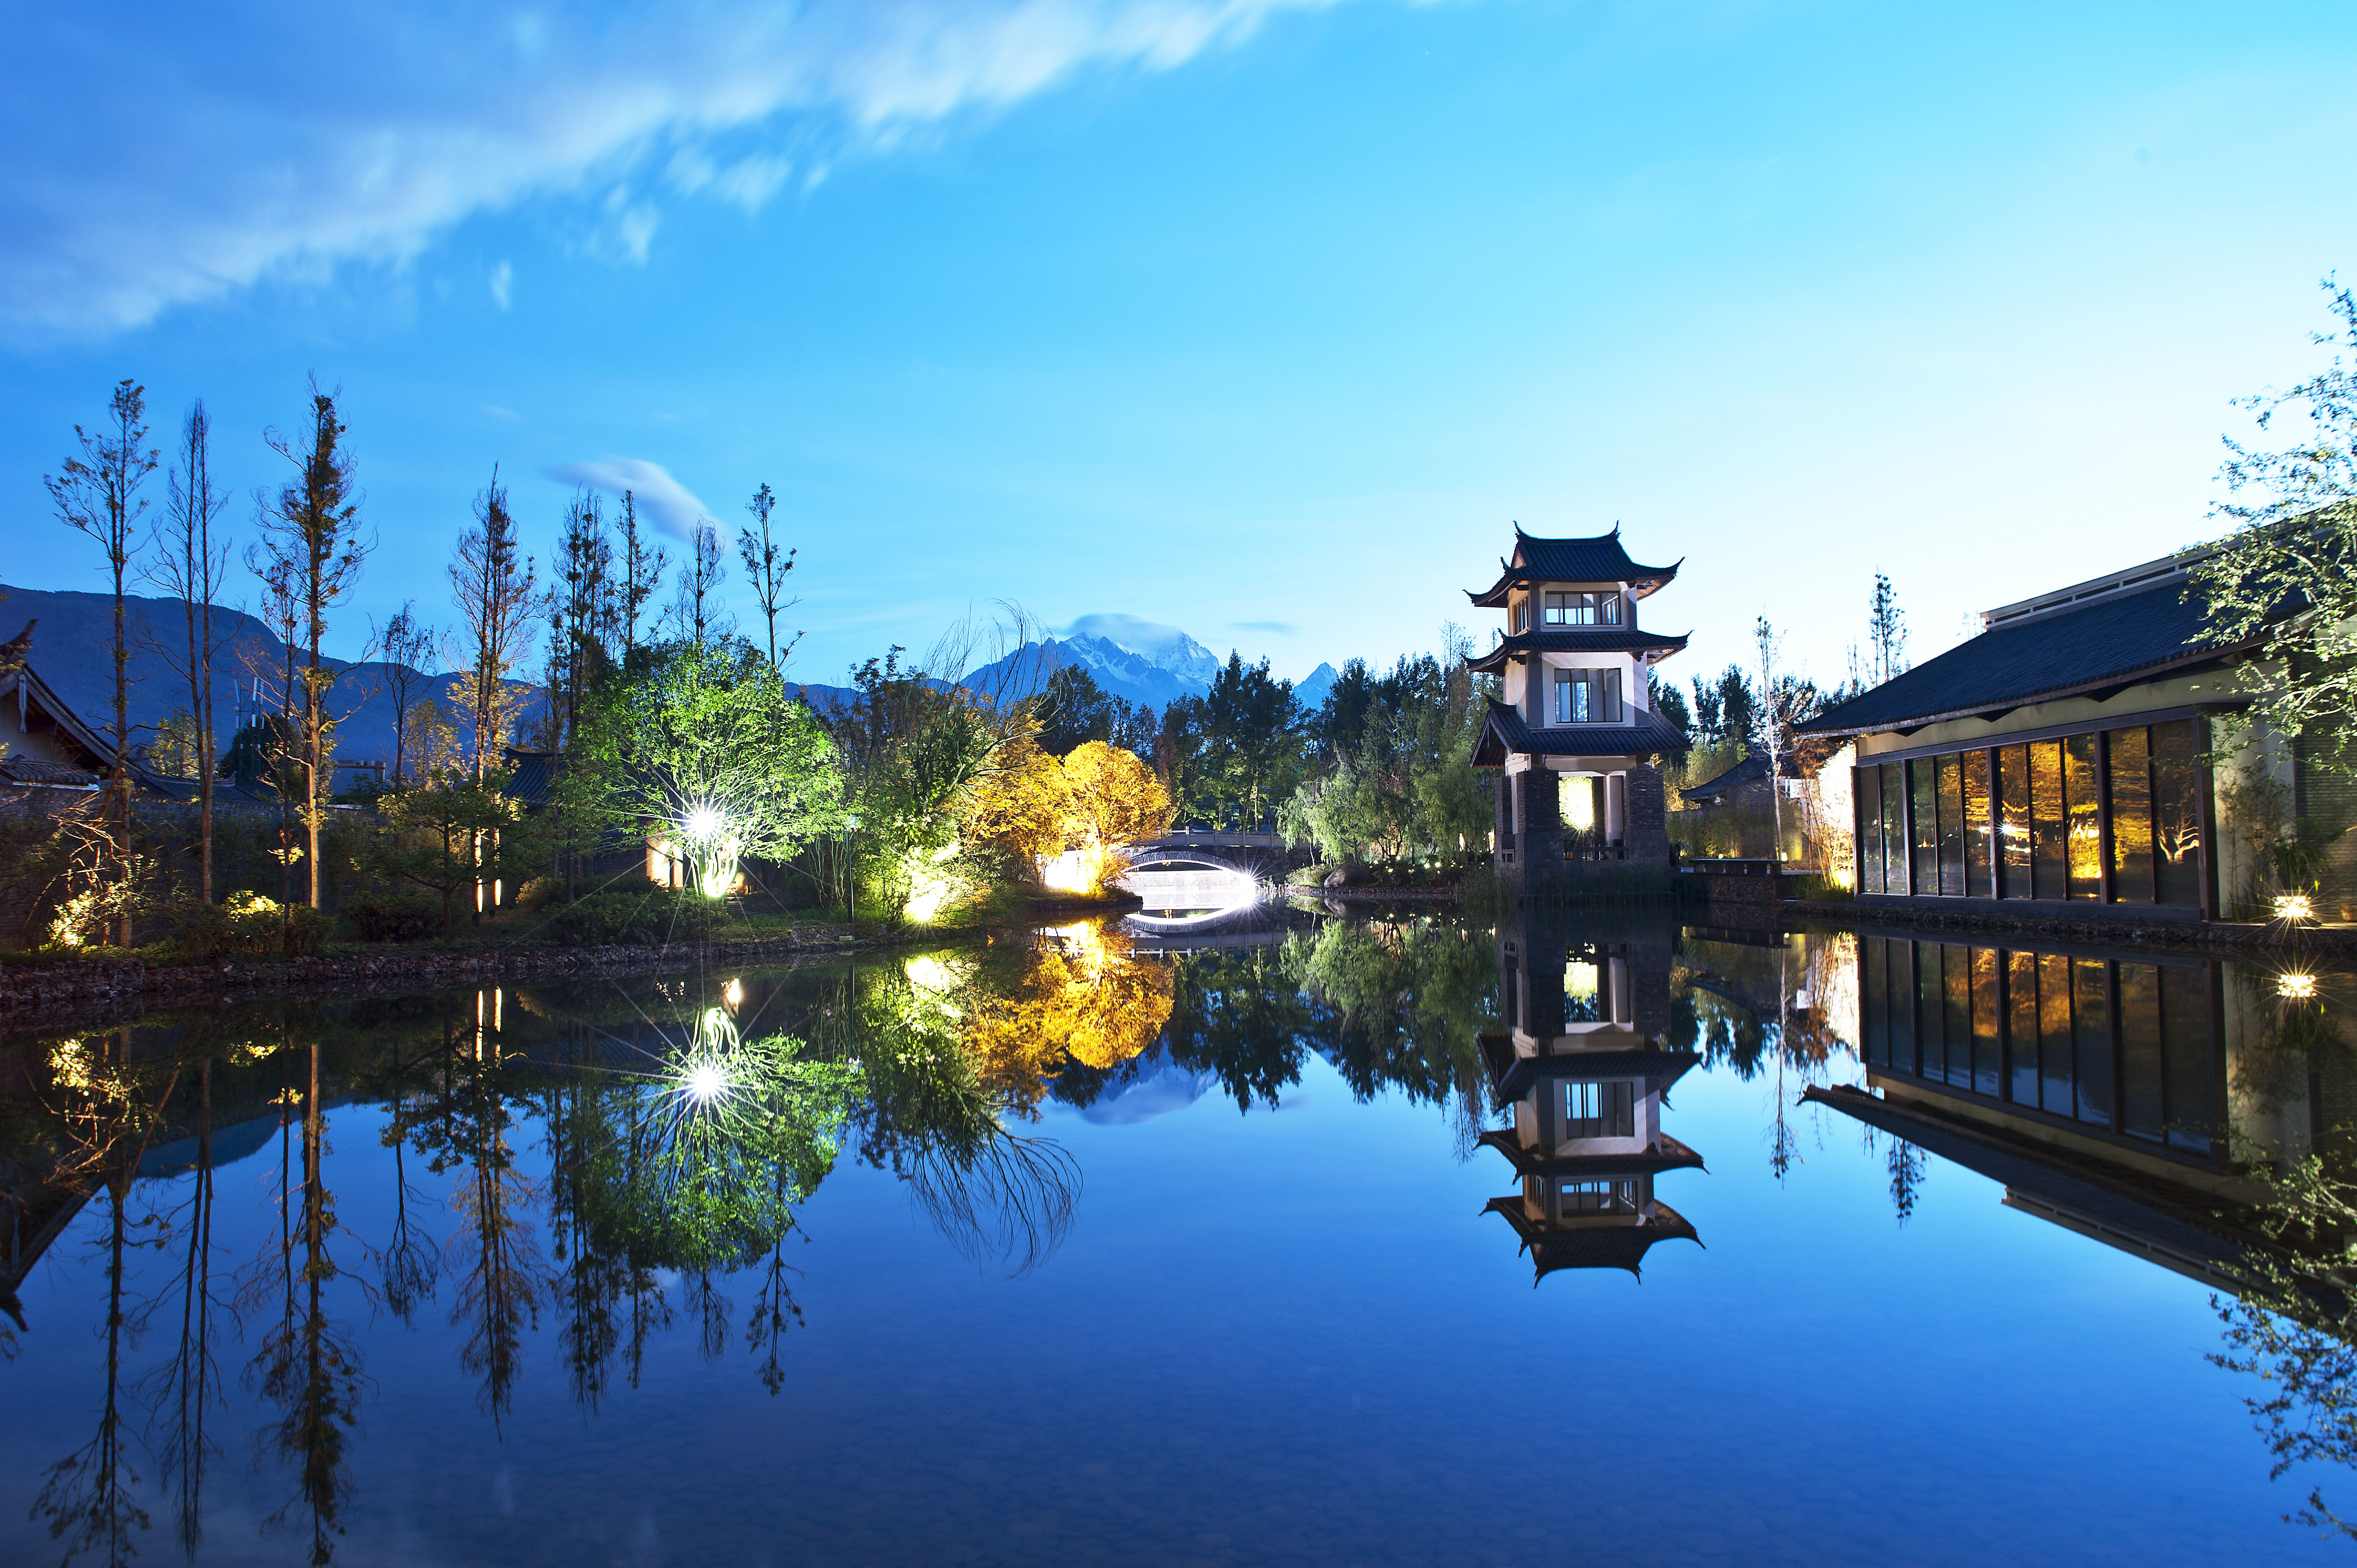 Interval International signs exclusive club affiliation agreement with Yunnan Cloudreams Hotel Management